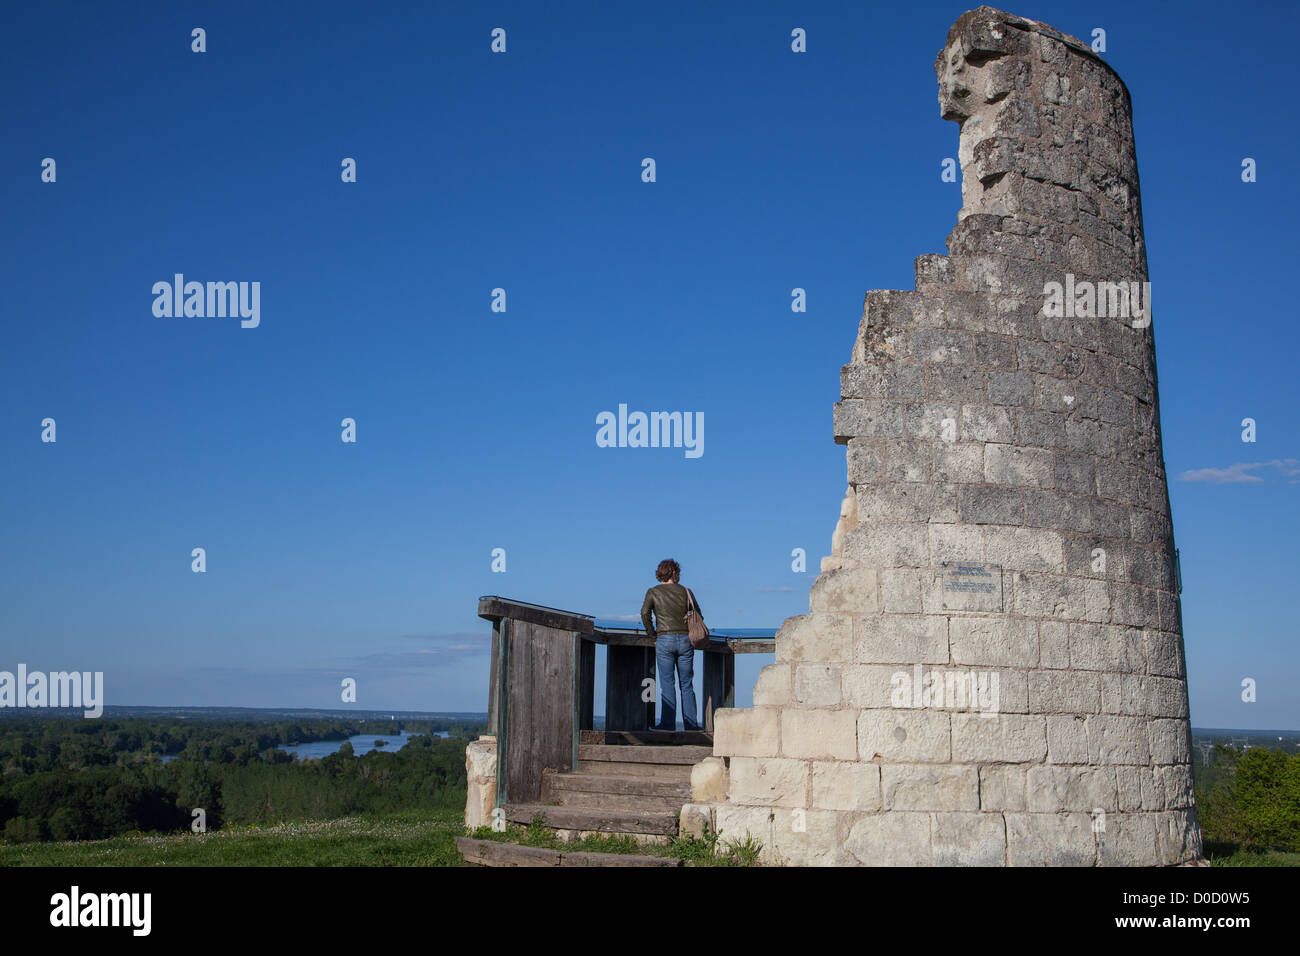 LOIRE A VELO' CYCLING ITINERARY BELVEDERE IN CANDES-SAINT-MARTIN INDRE-ET-LOIRE (37) FRANCE - Stock Image